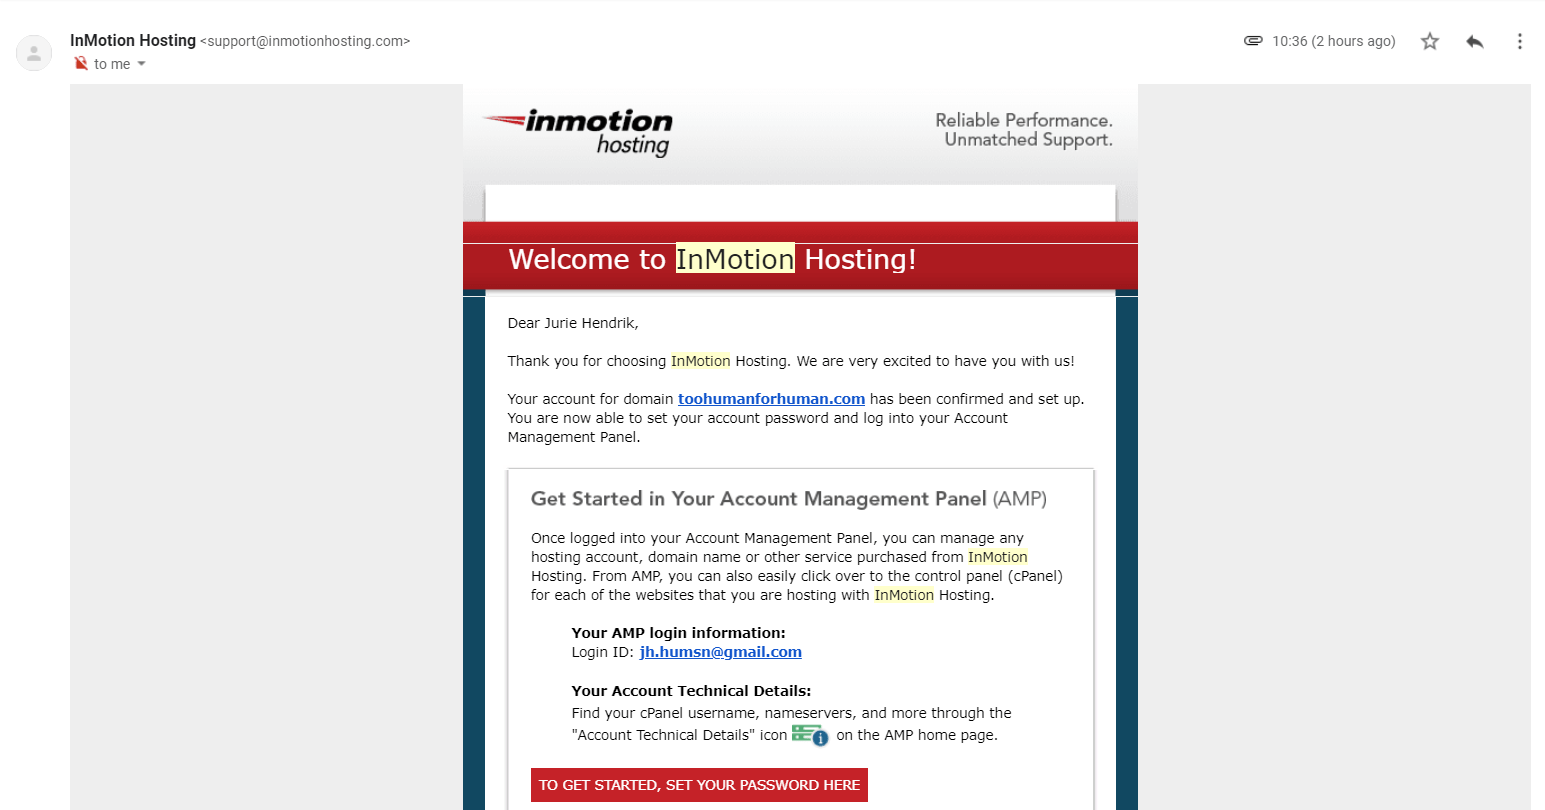 How to Create a New Account with InMotion Hosting-image13